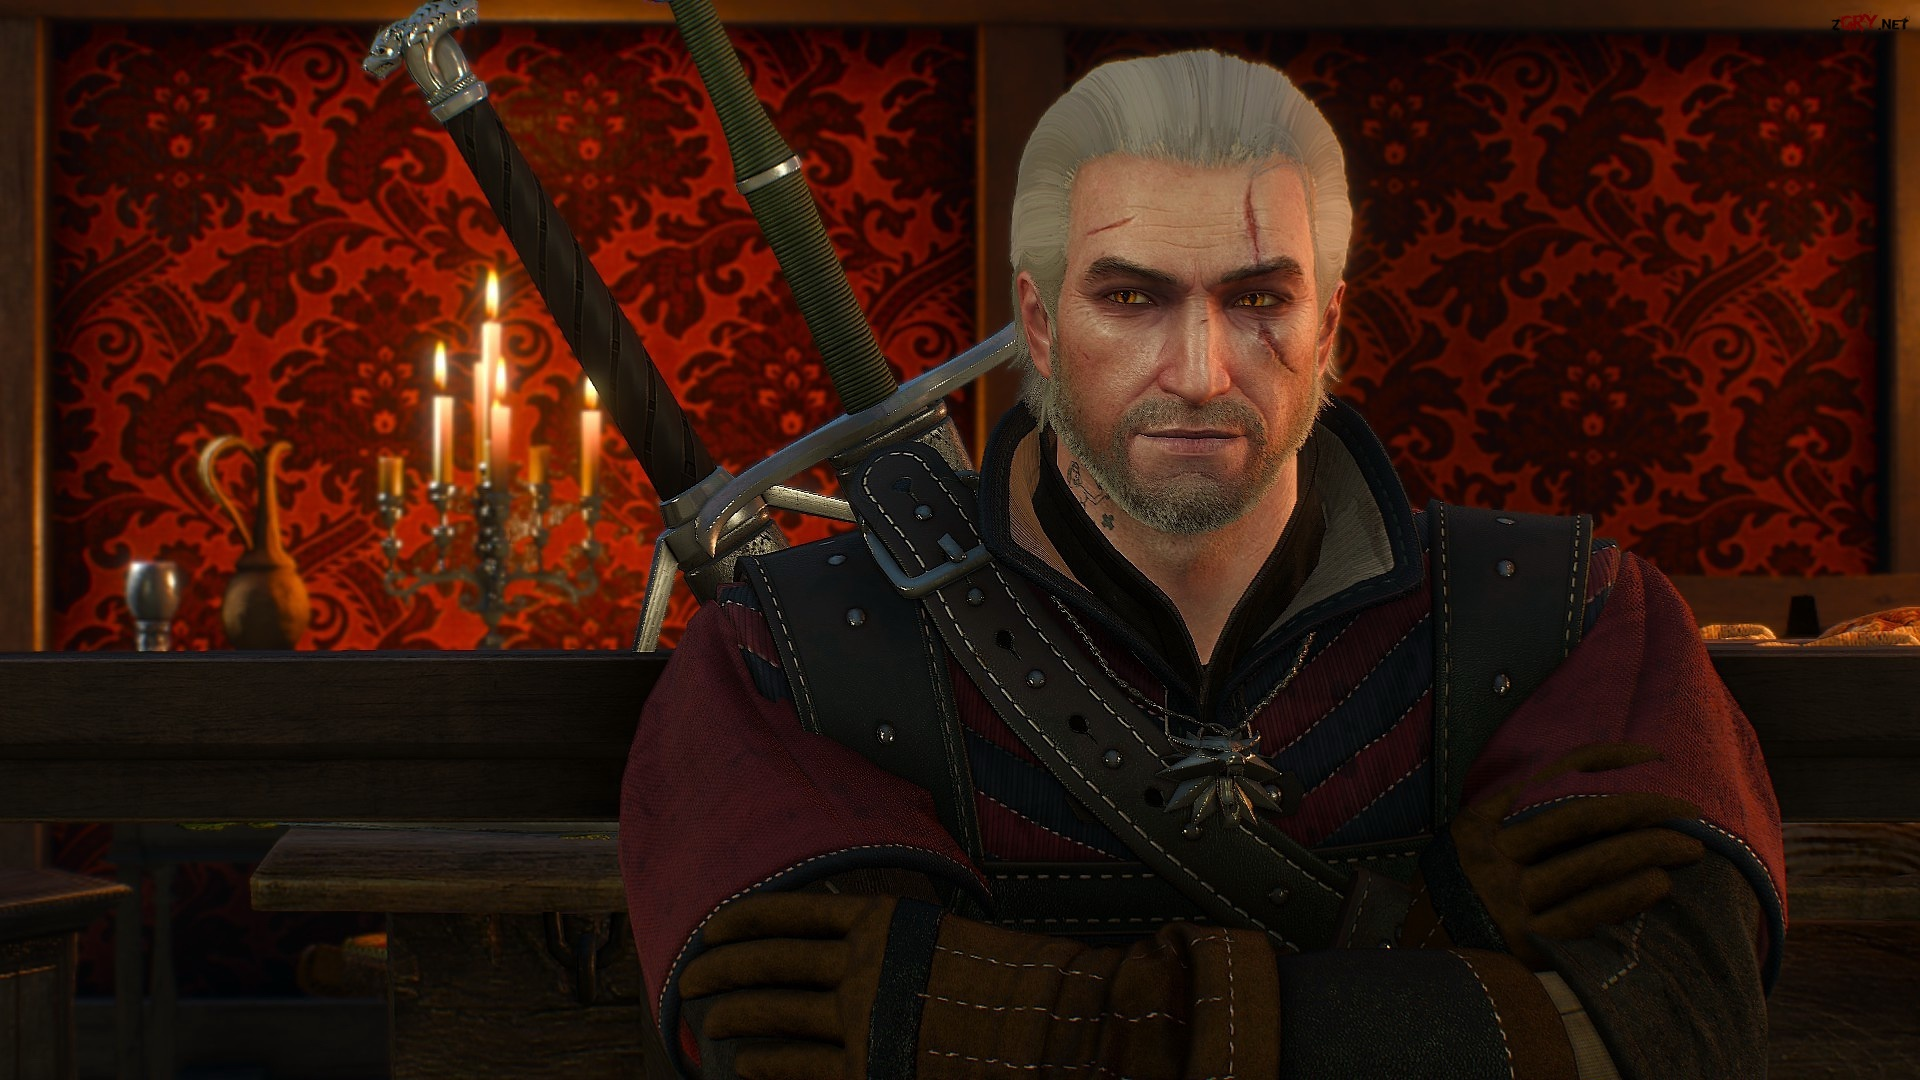 Gra, Wiedźmin 2 Zabójcy królów, The Witcher 2 Assassins of Kings, Geralt z Rivii